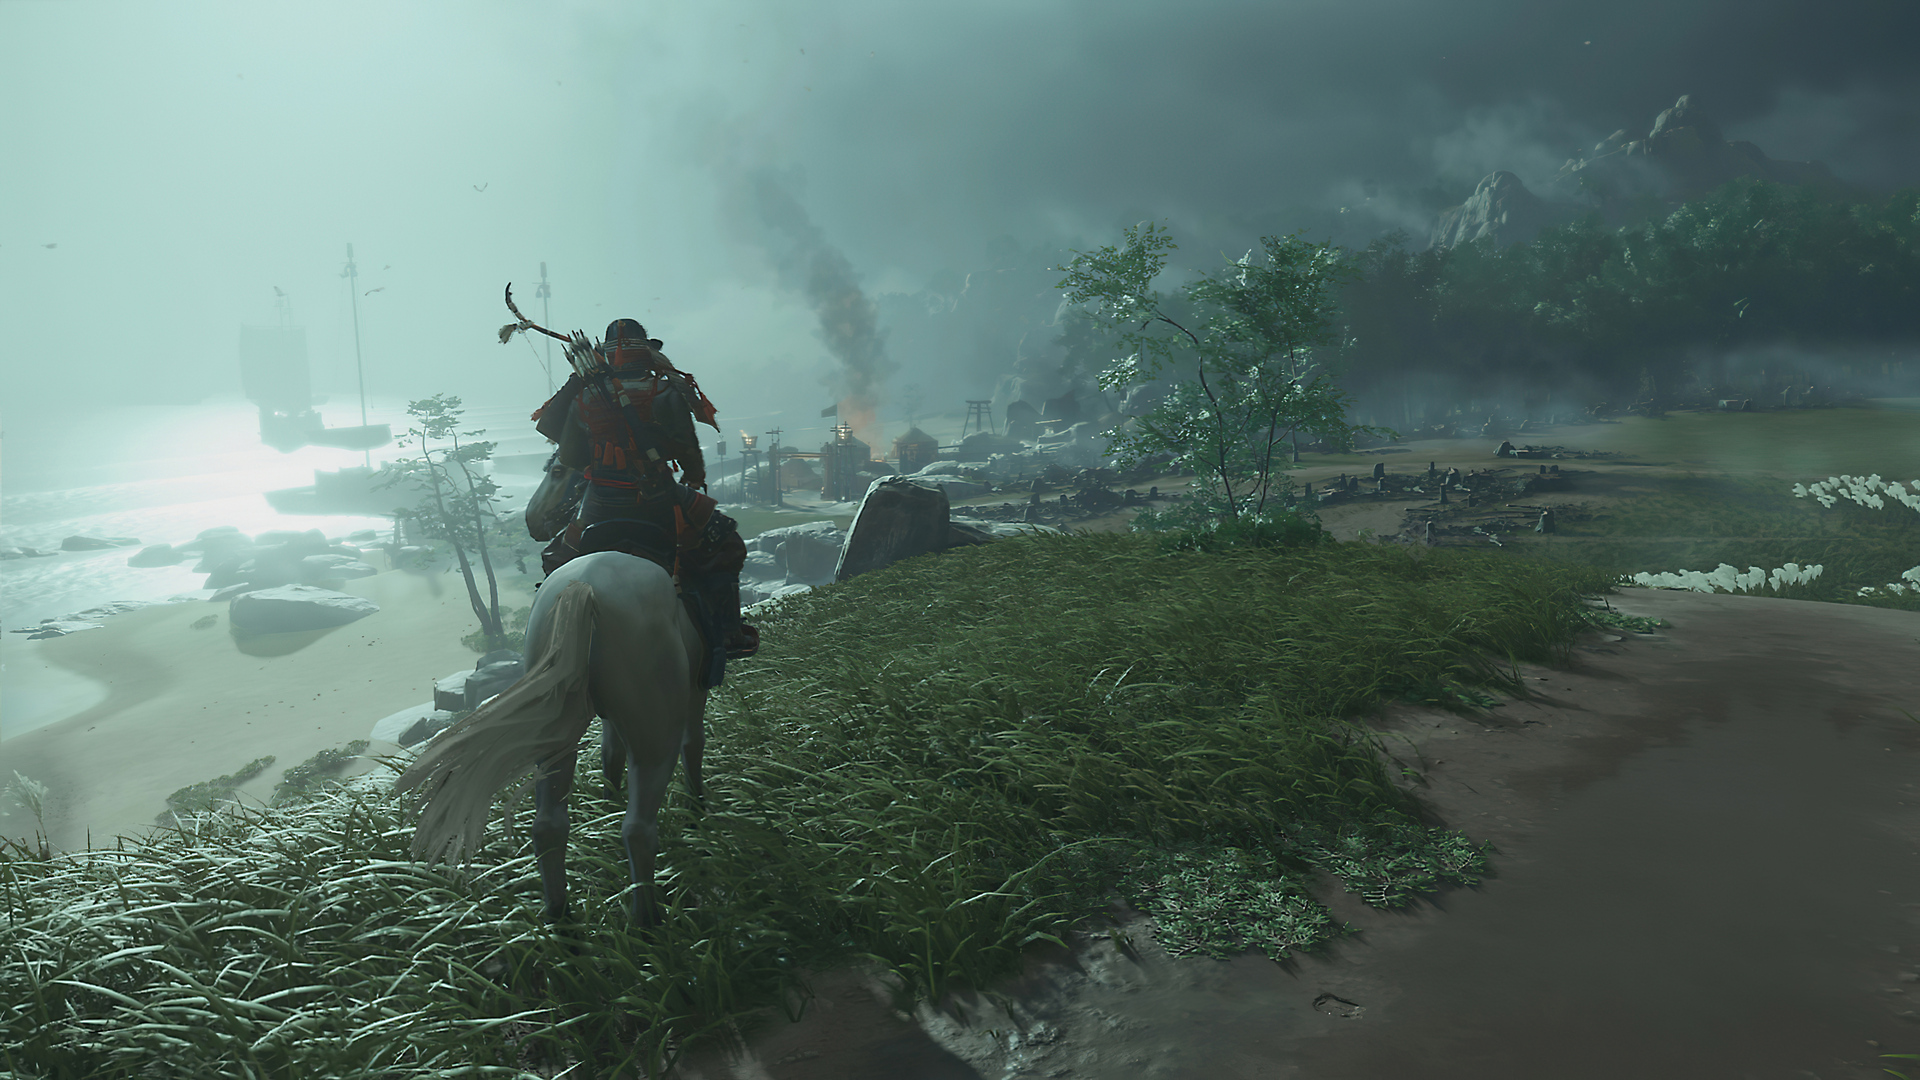 https://images.hdqwalls.com/download/ghost-of-tsushima-2020-4k-9s-1920x1080.jpg